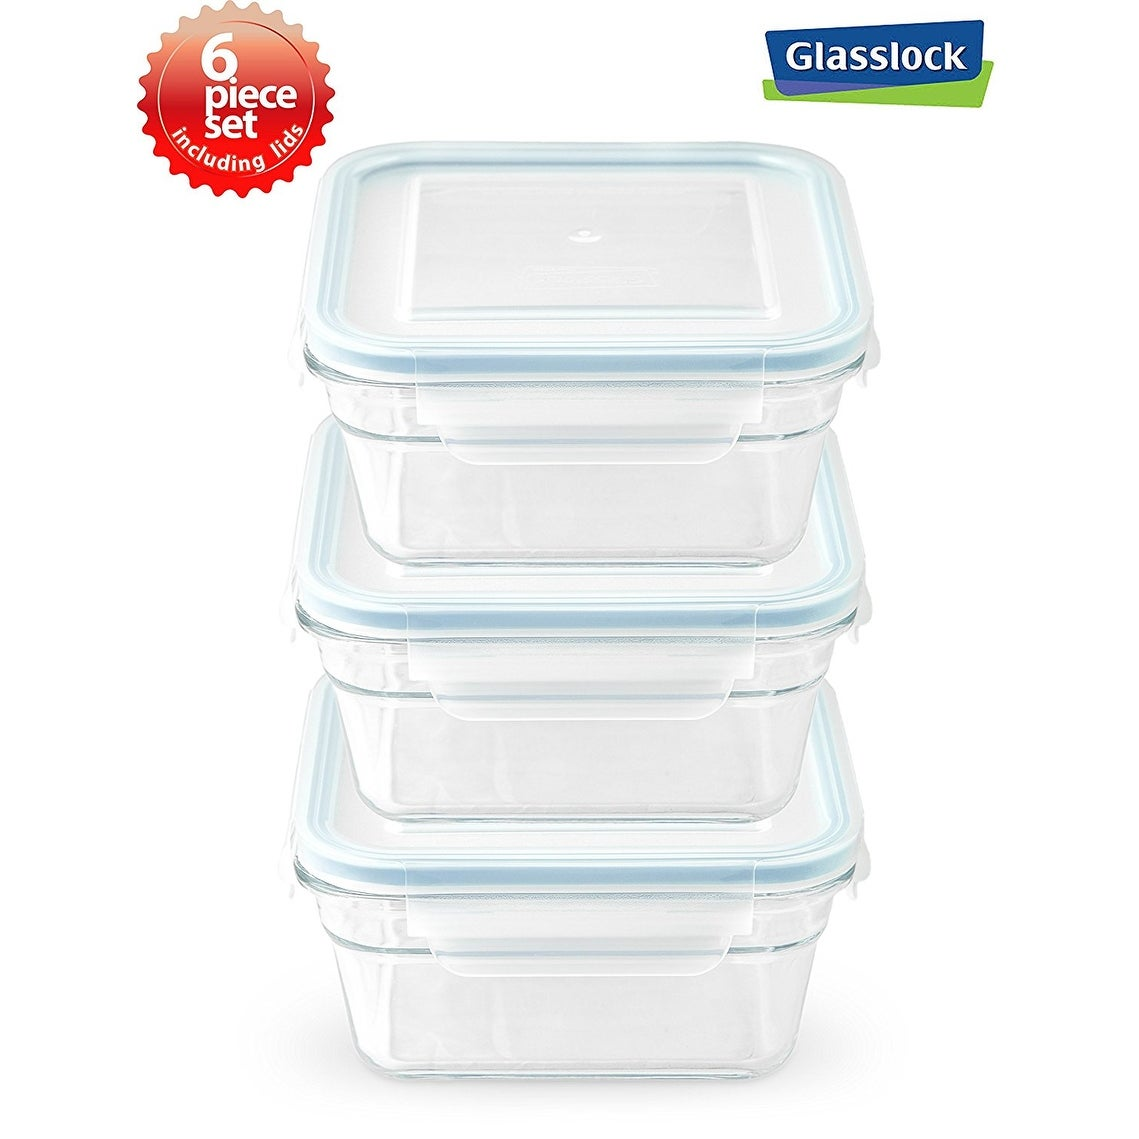 Incroyable Glasslock Airtight Square Food Container 6 Piece Set (3.3cups/781ml)